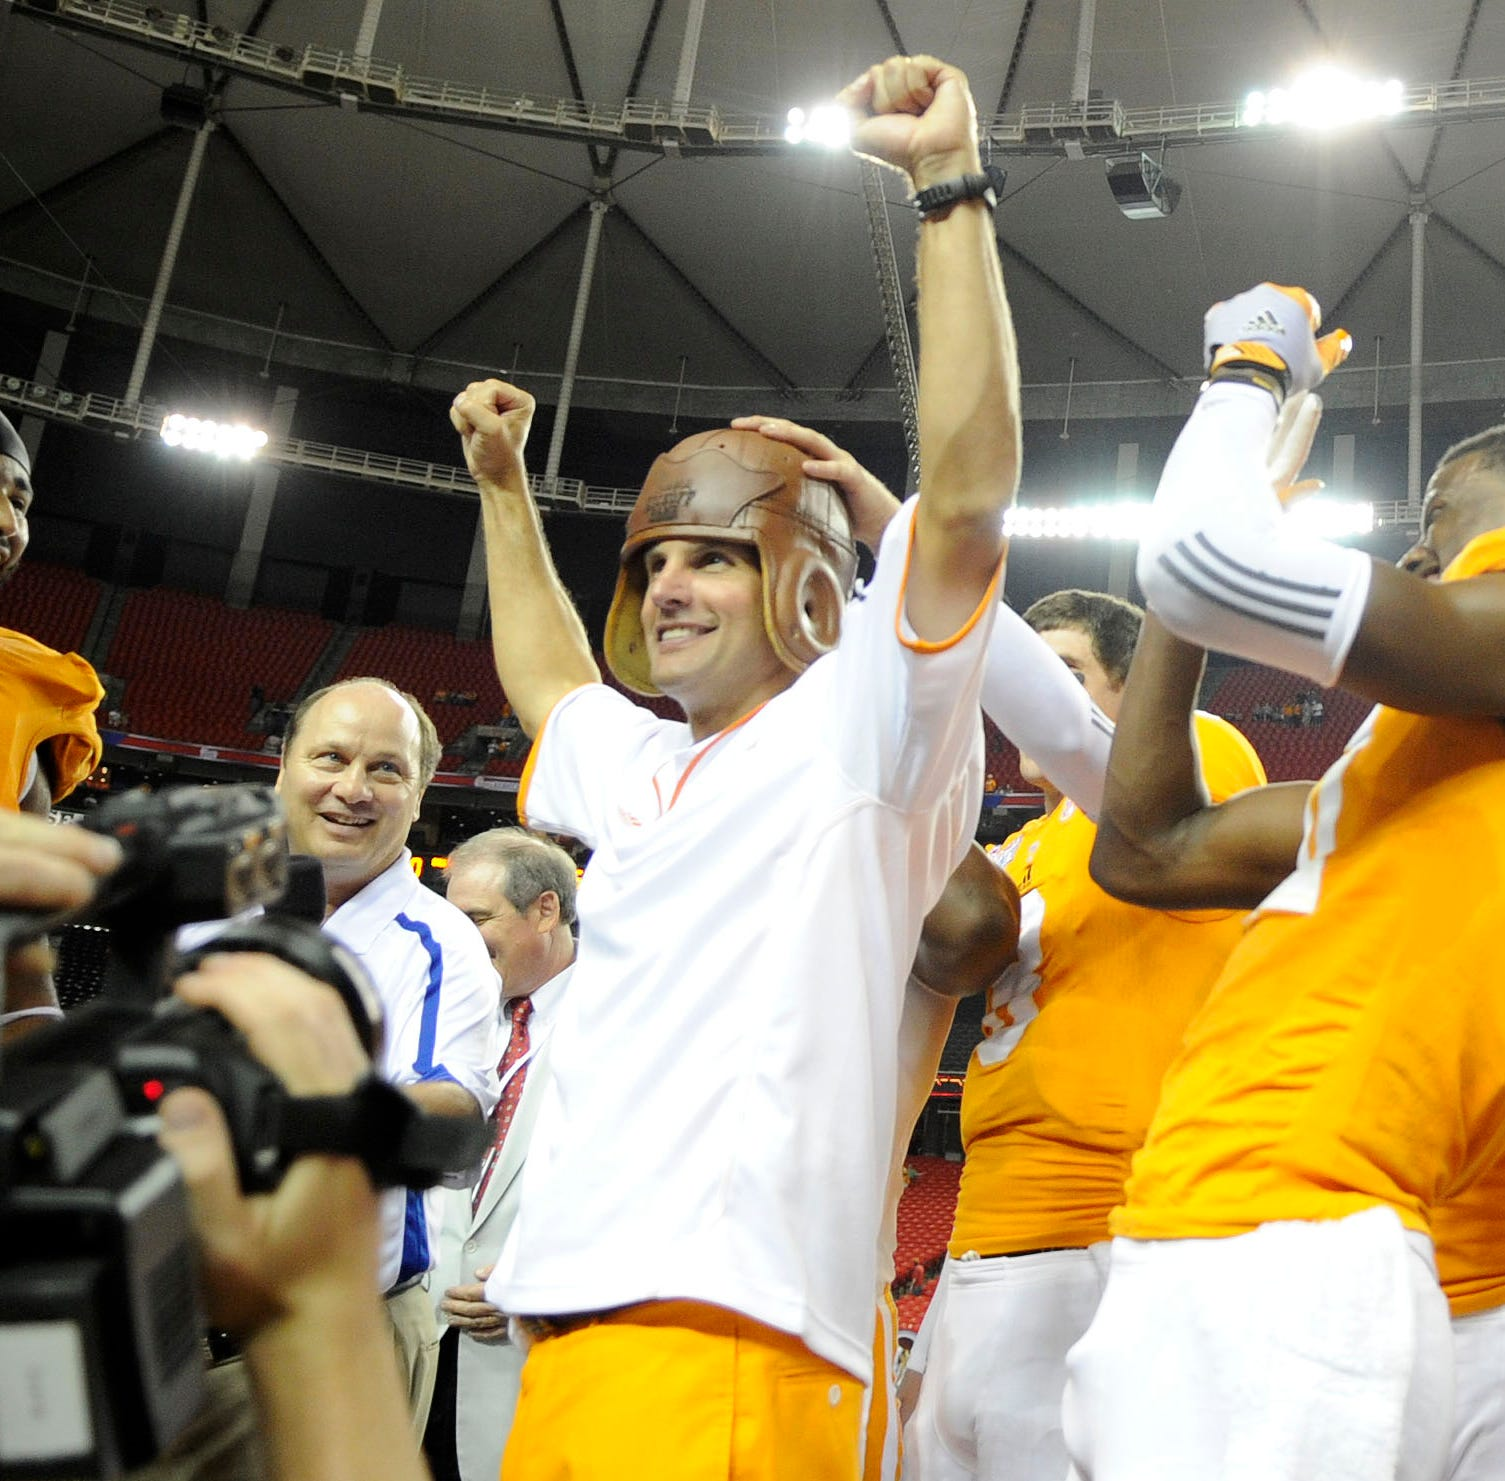 Mike Strange: Wow, the UT Vols opening game is a sure sign of ...  (pick one)